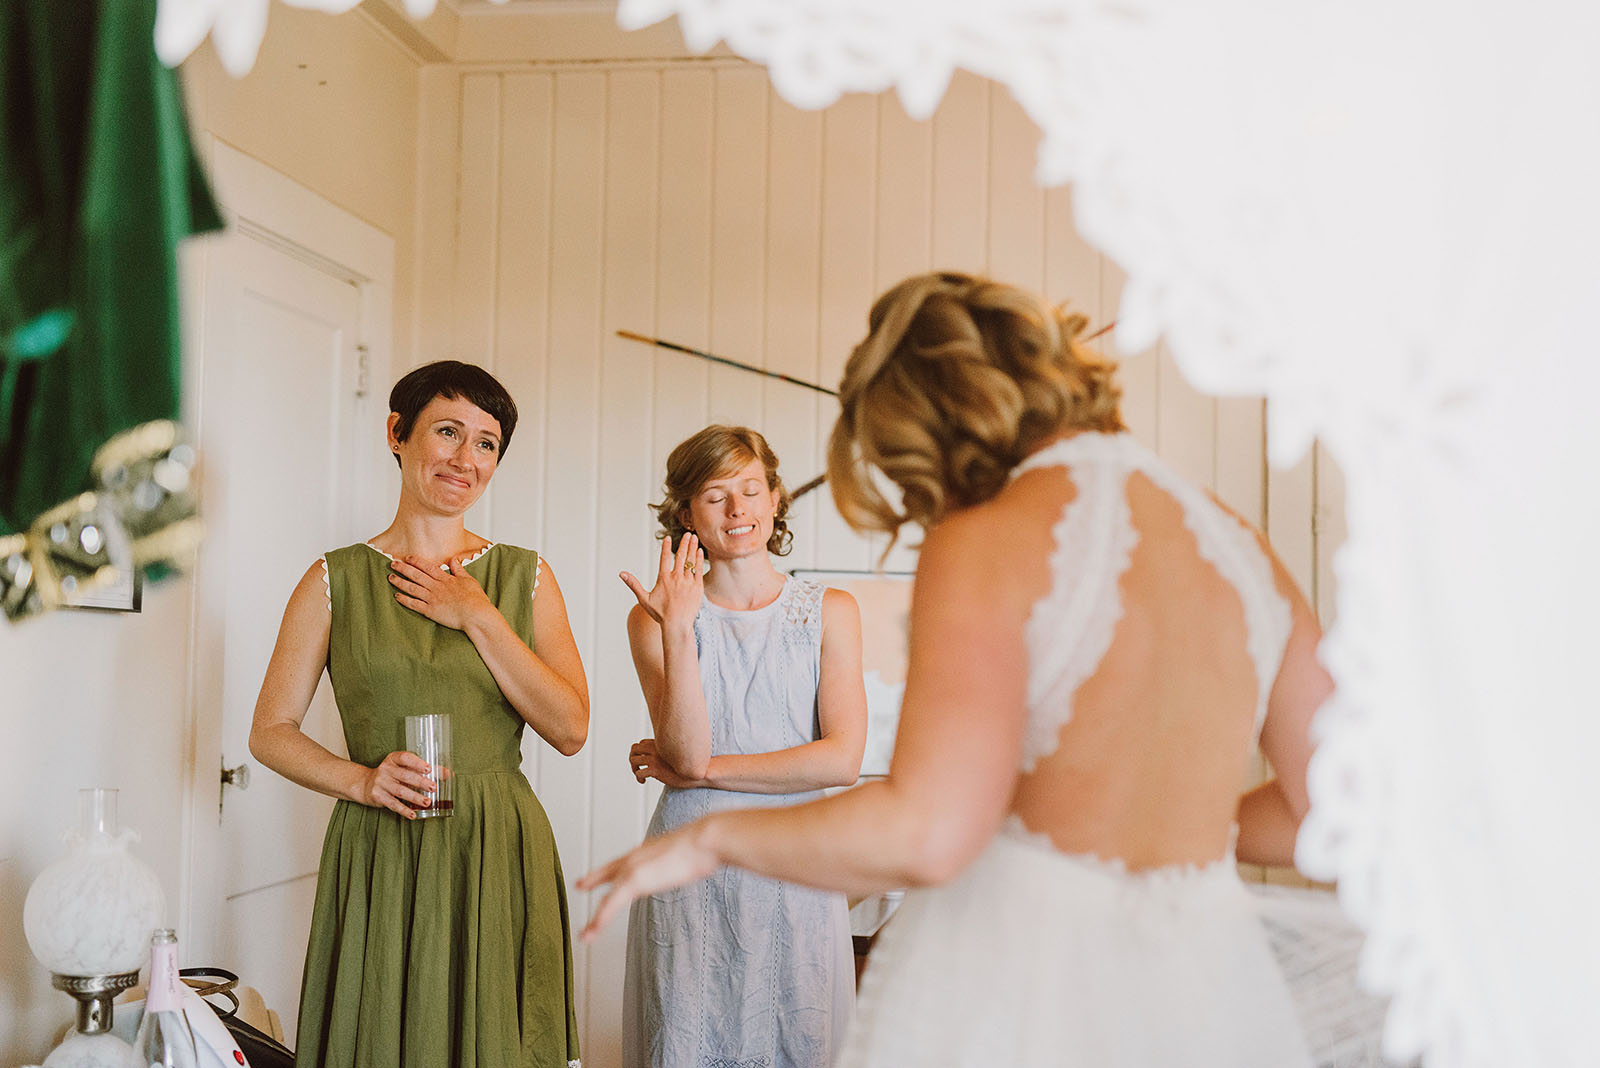 Bridesmaids watching the bride get dressed at a SouWester Wedding in Seaview, WA